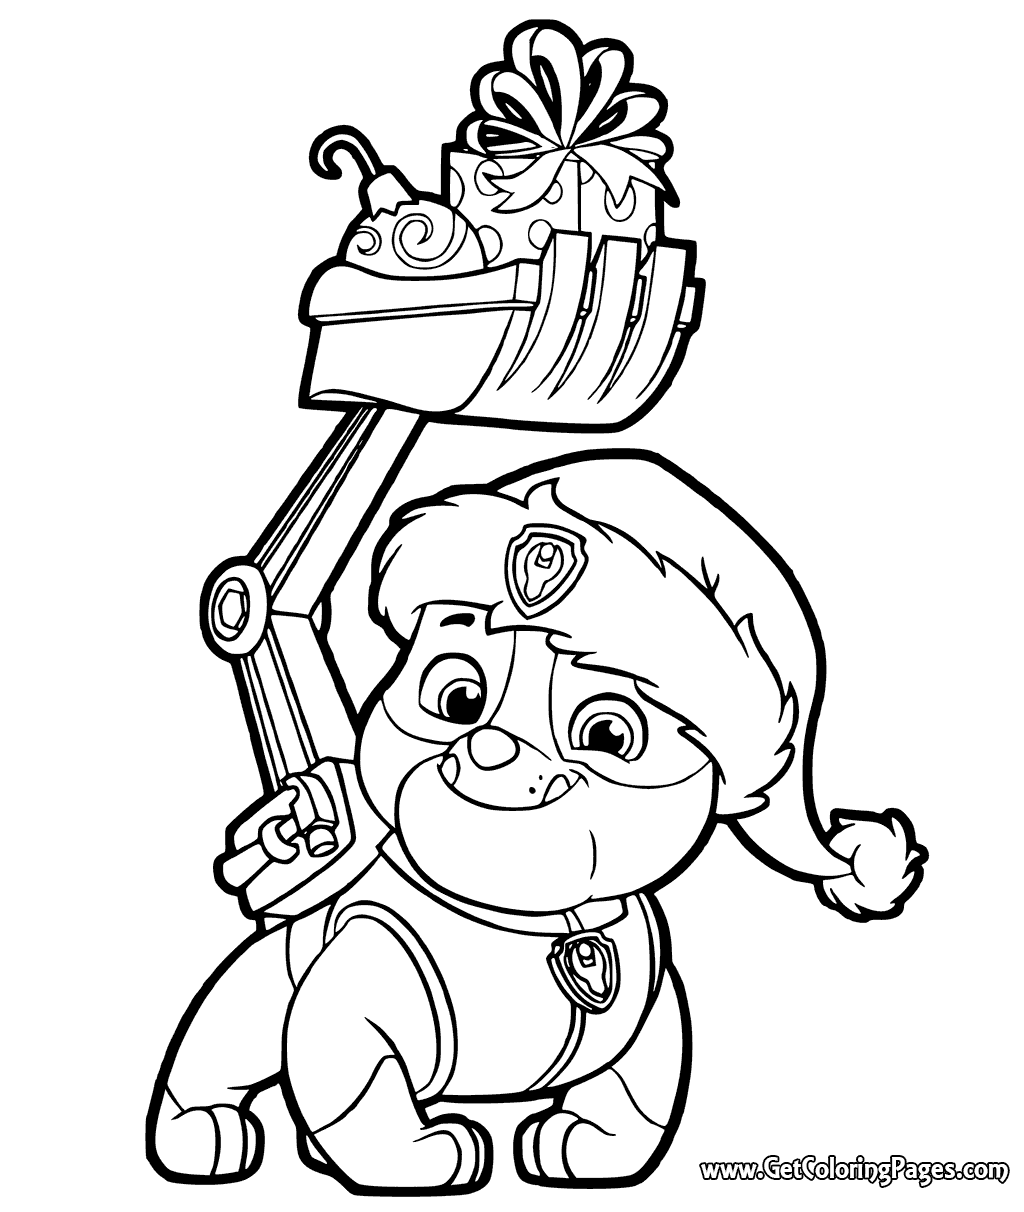 Paw Patrol Christmas Coloring Pages at GetDrawings   Free ...